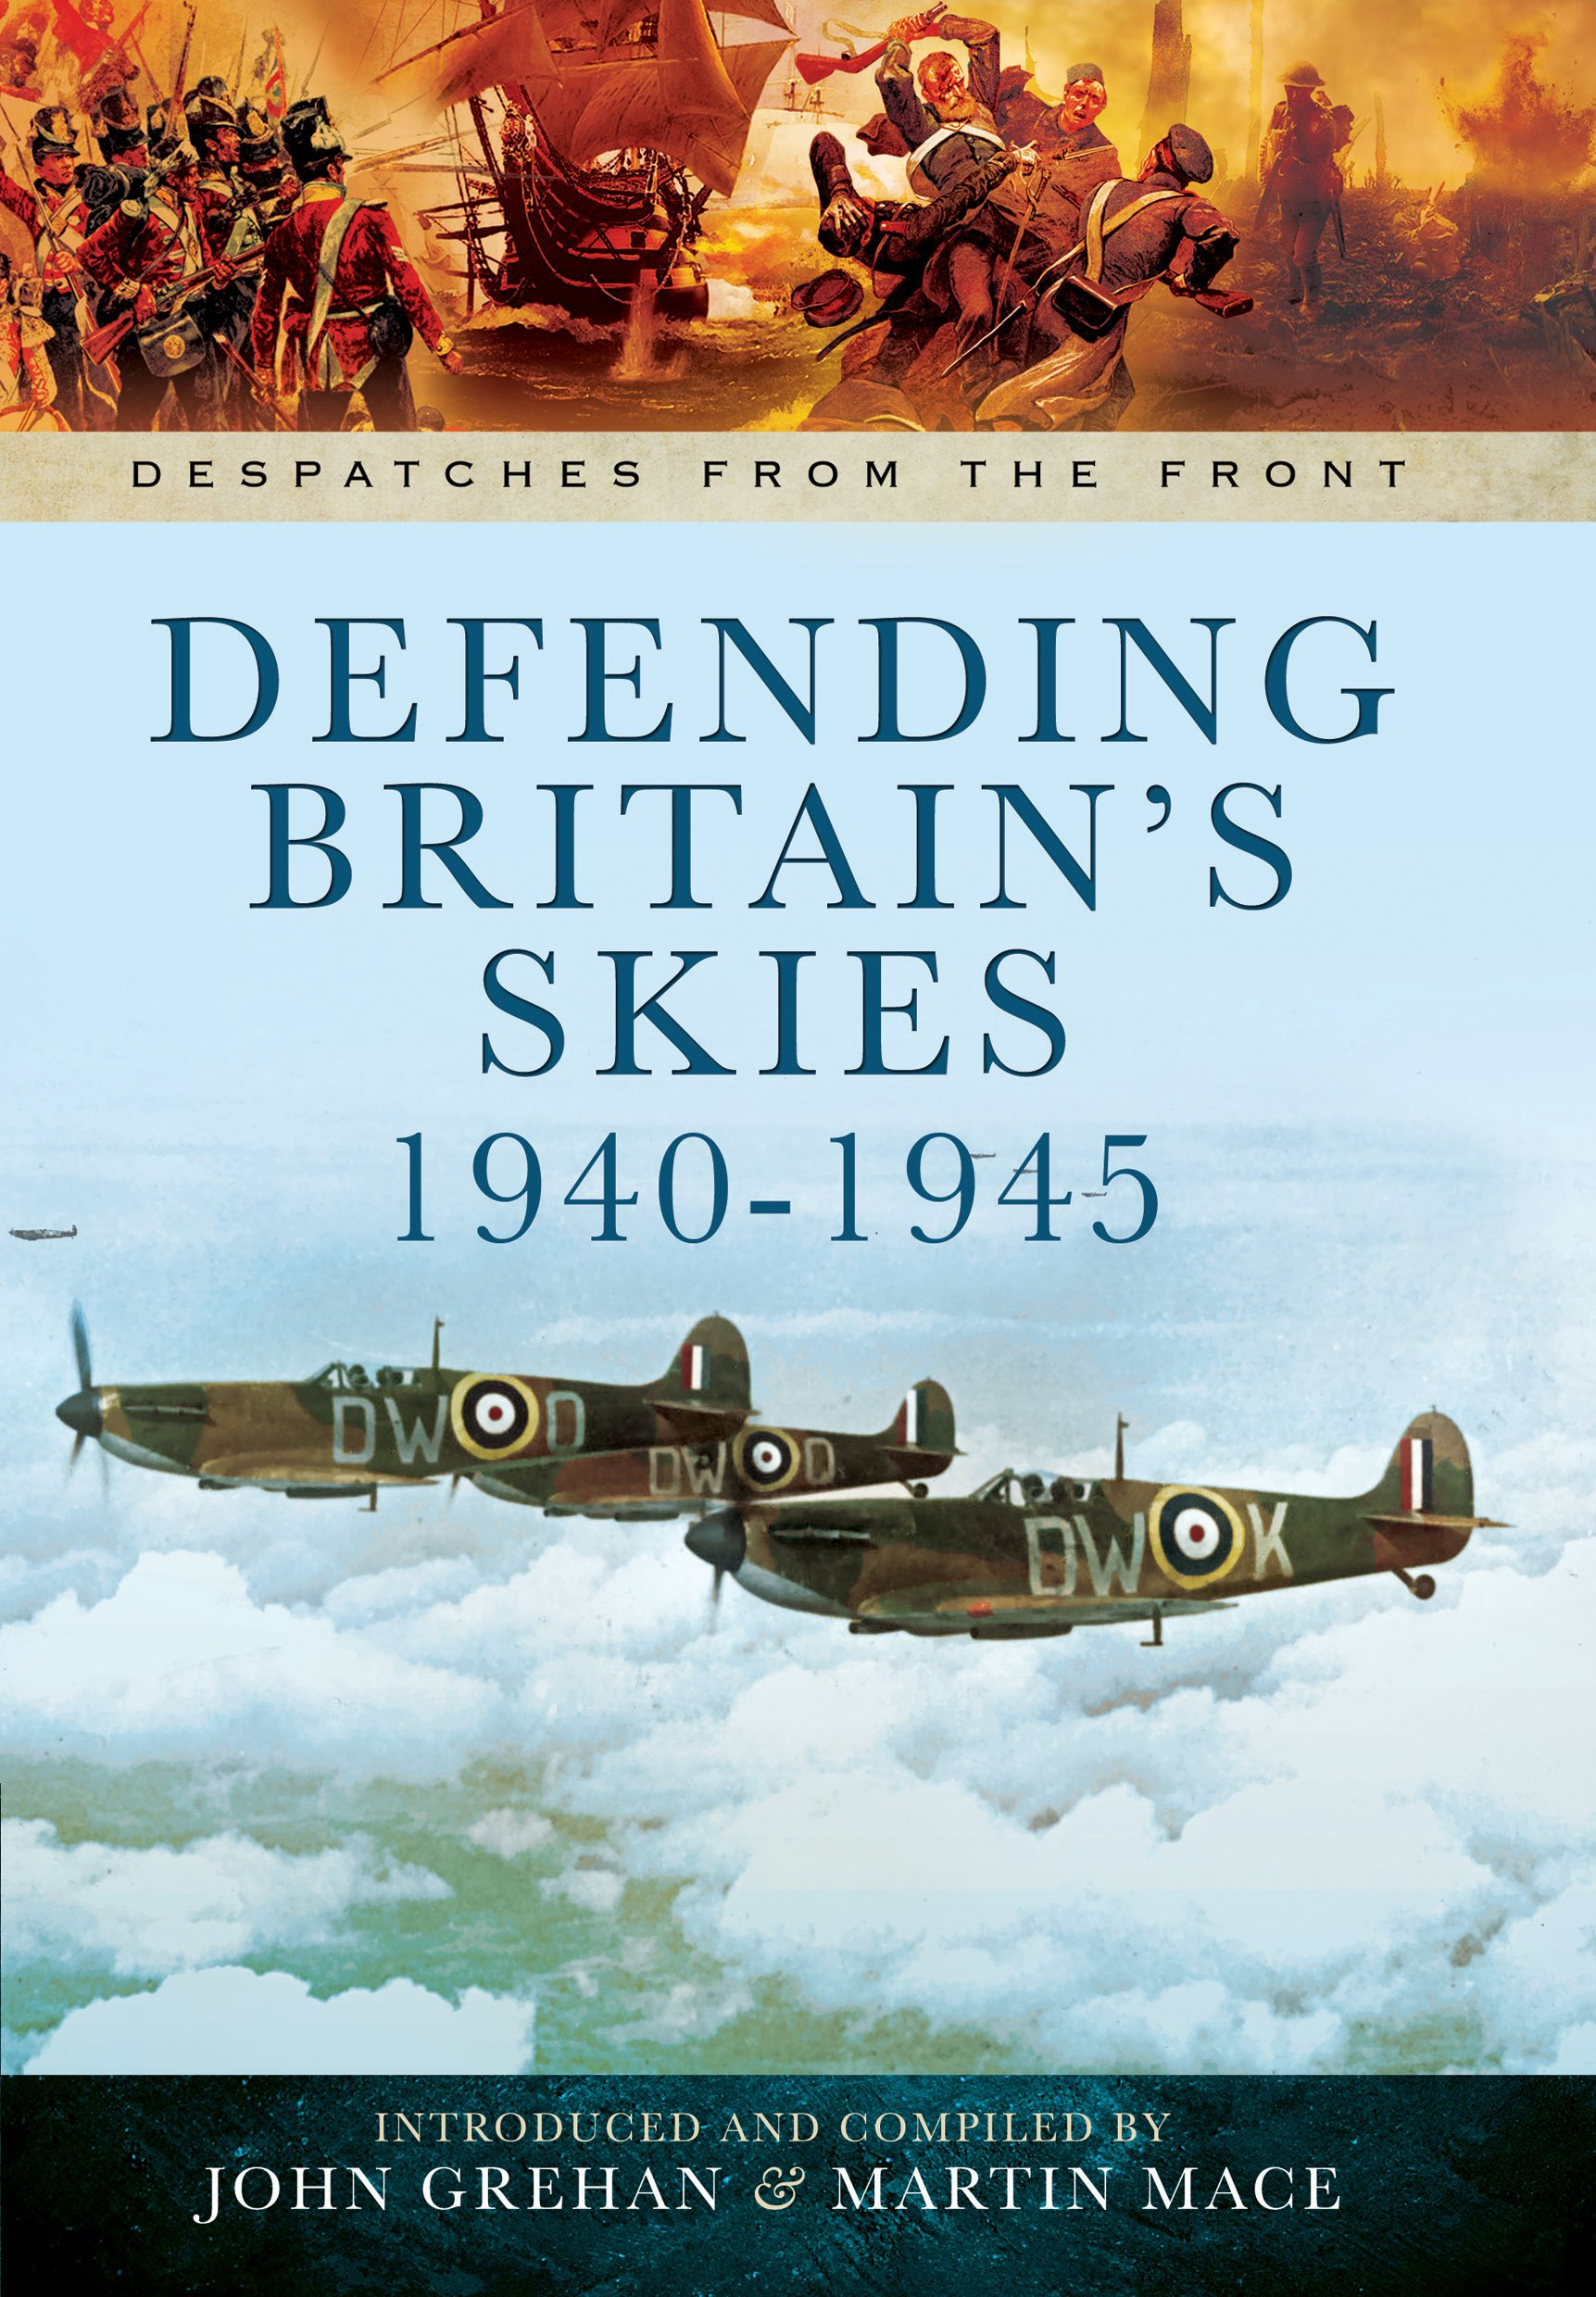 Defending Britain's Skies 1940-1945 (Despatches from the Front) free download